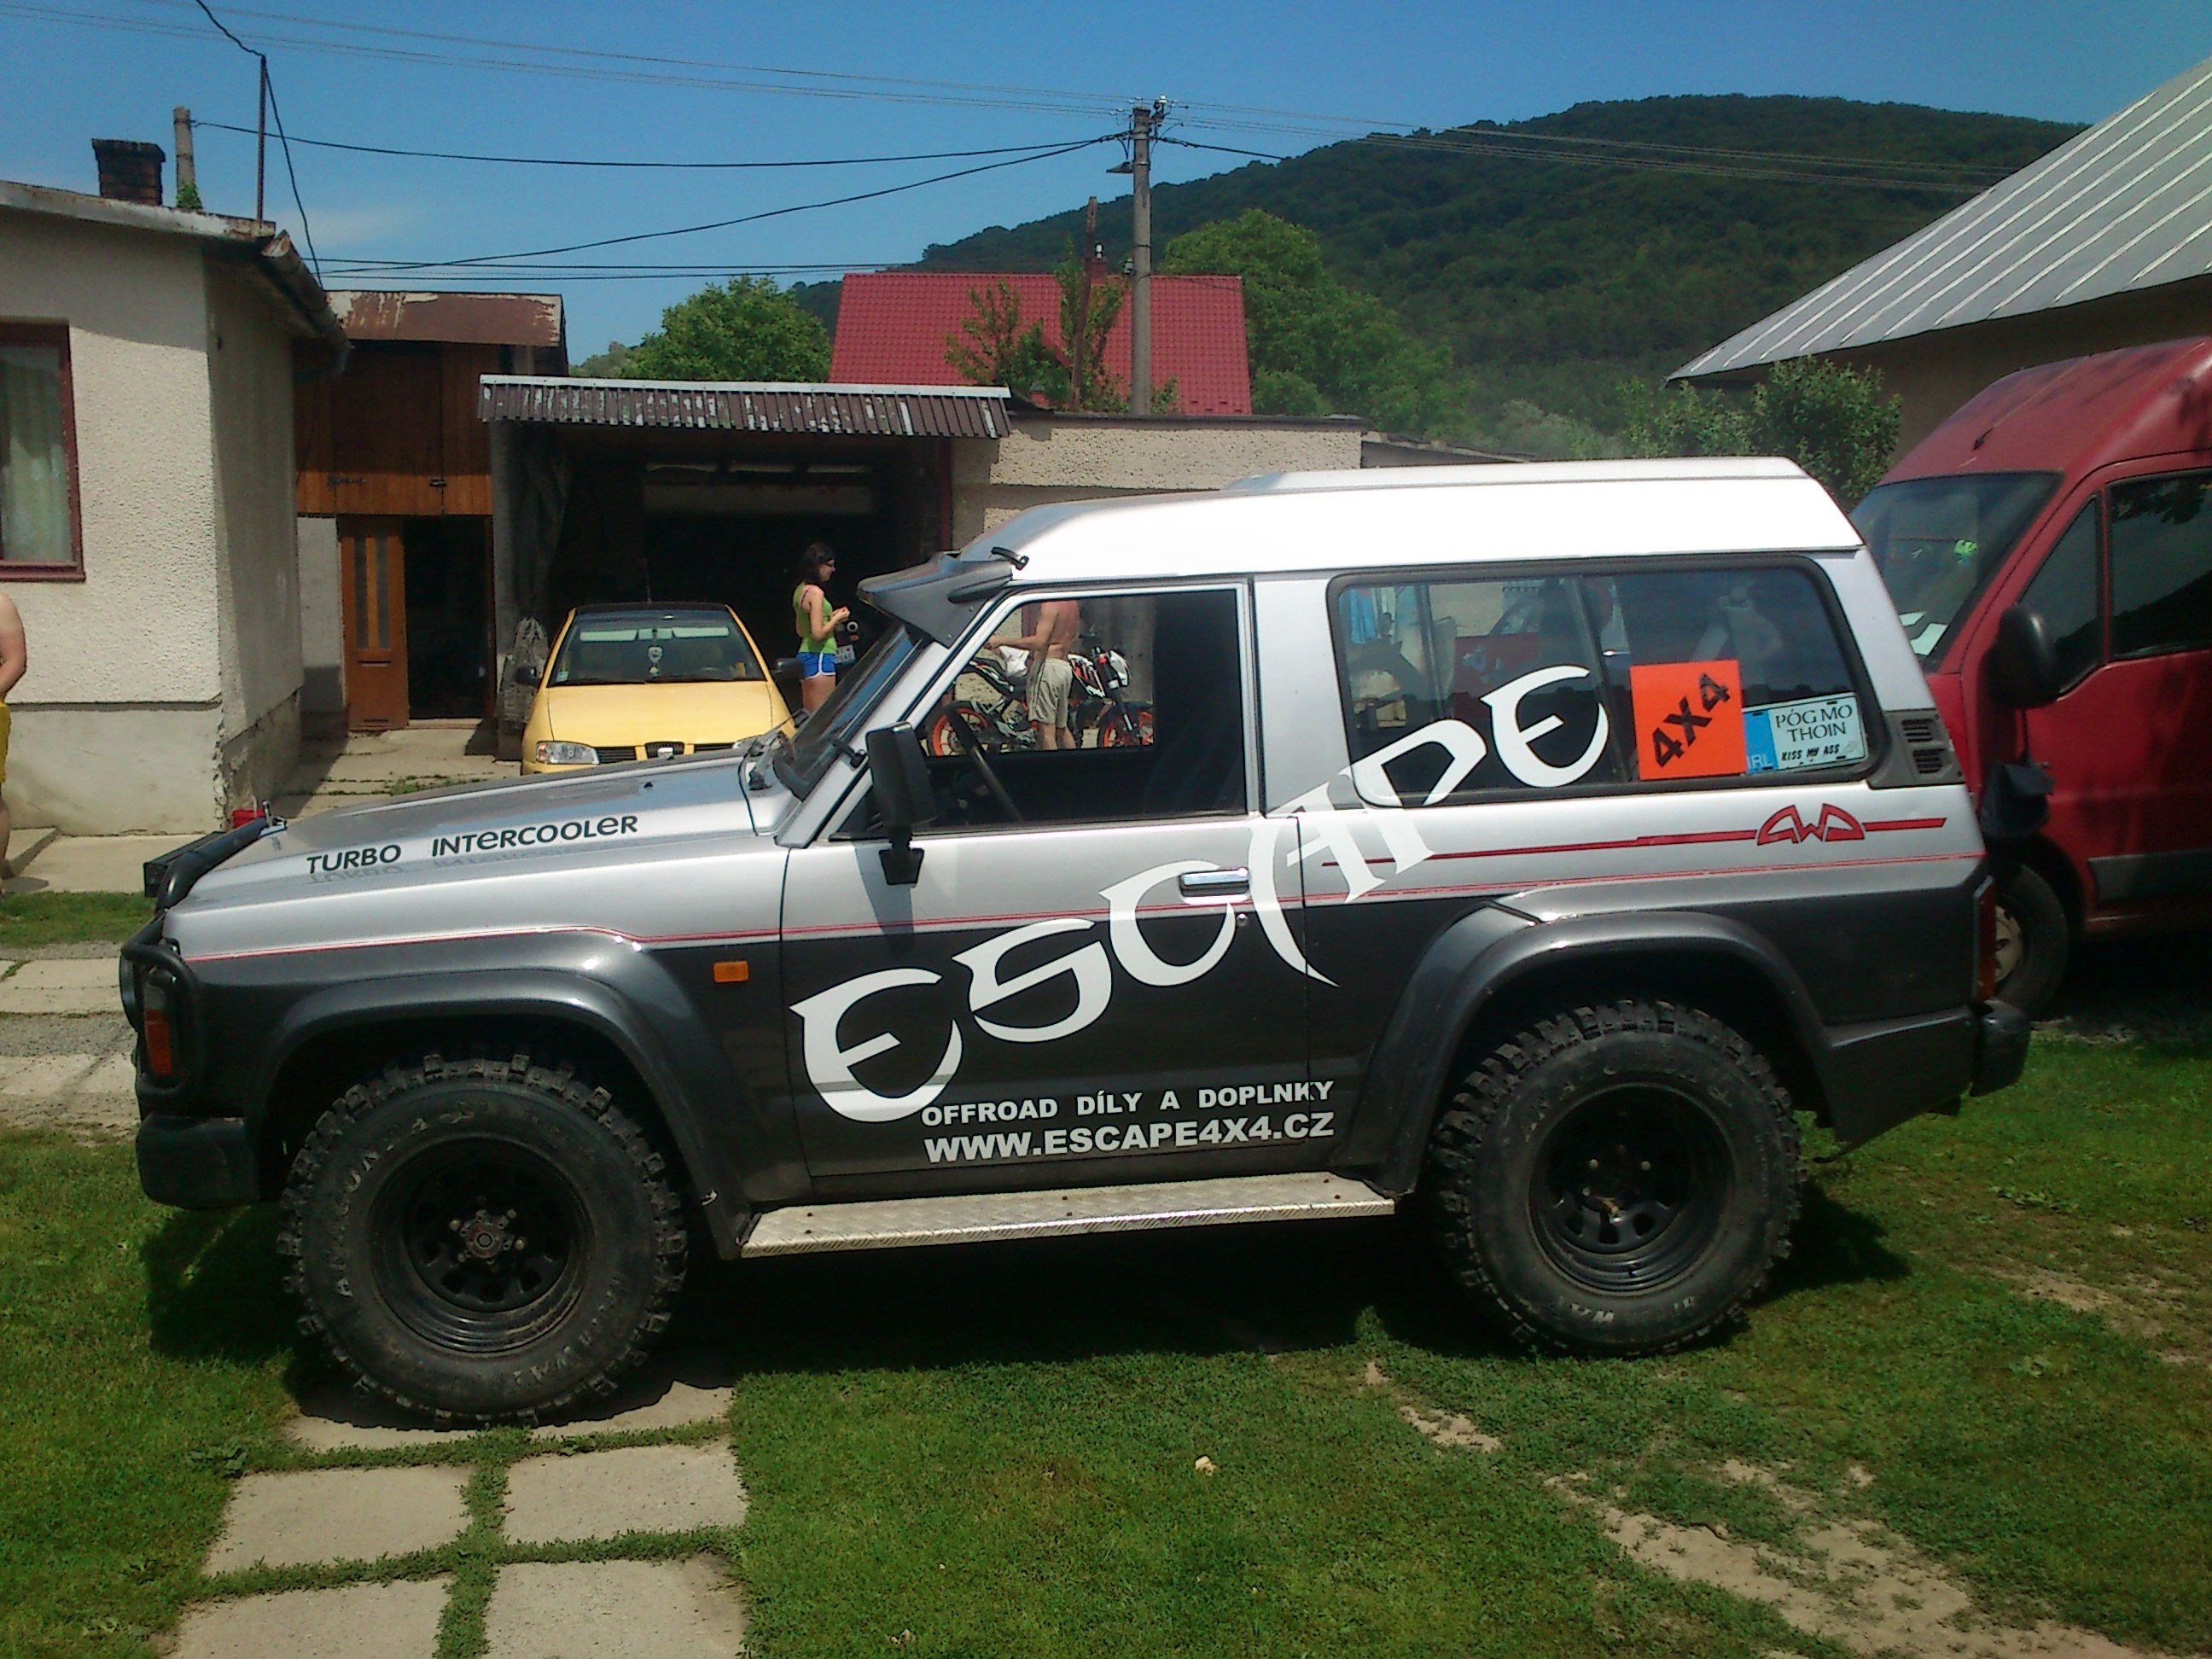 Nissan Patrol Escape4x4